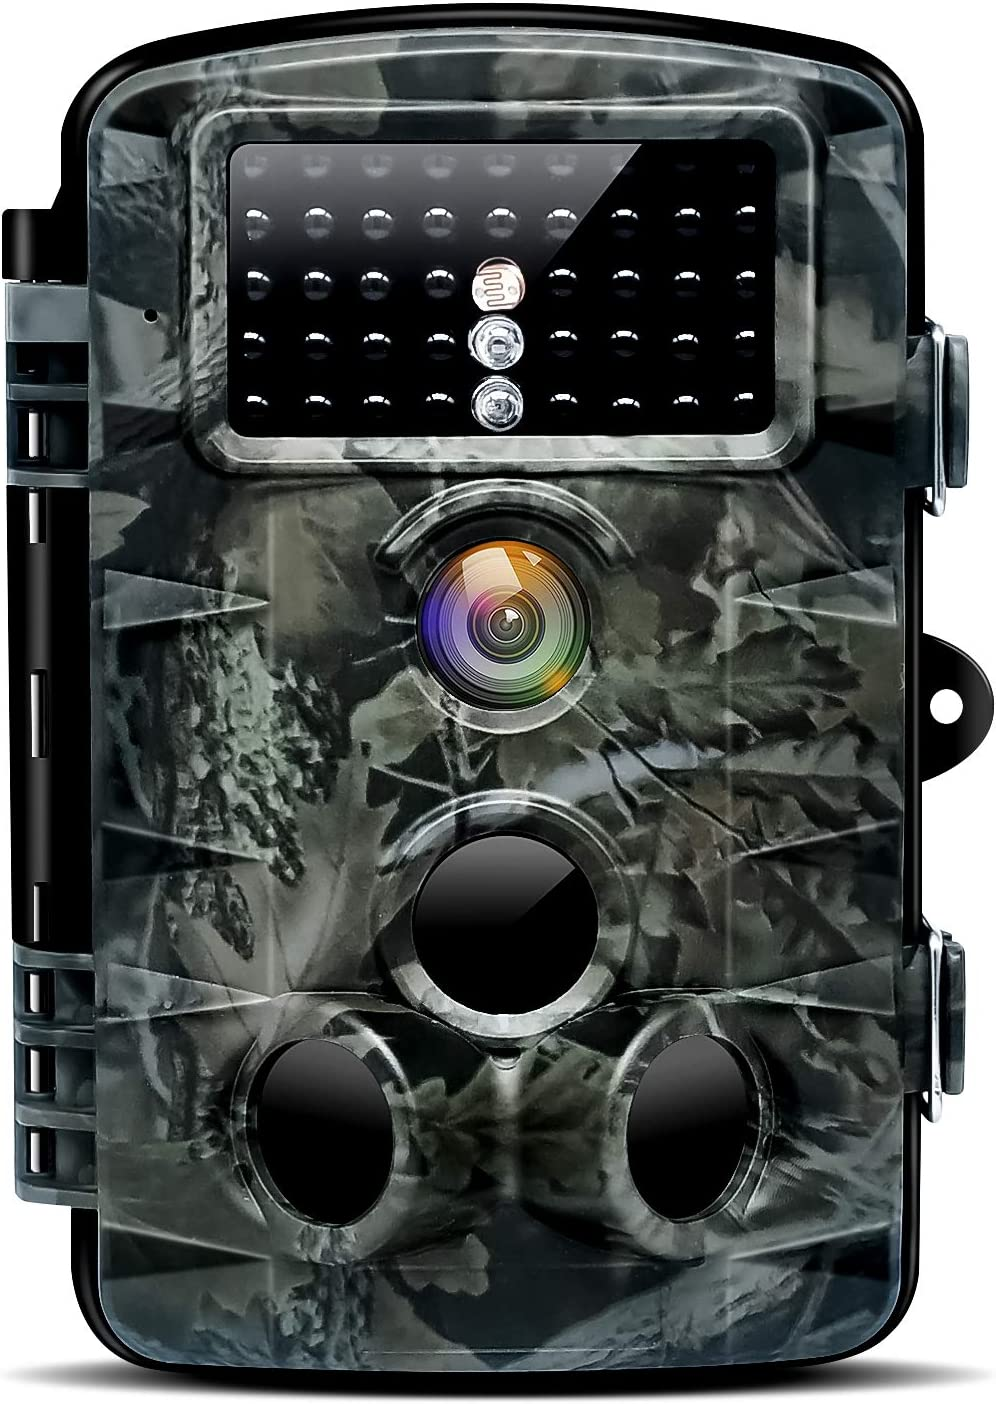 Nycetek Game Trail lowest Dealing full price reduction price Camera Hunting Activated Trigg in Motion 0.2s